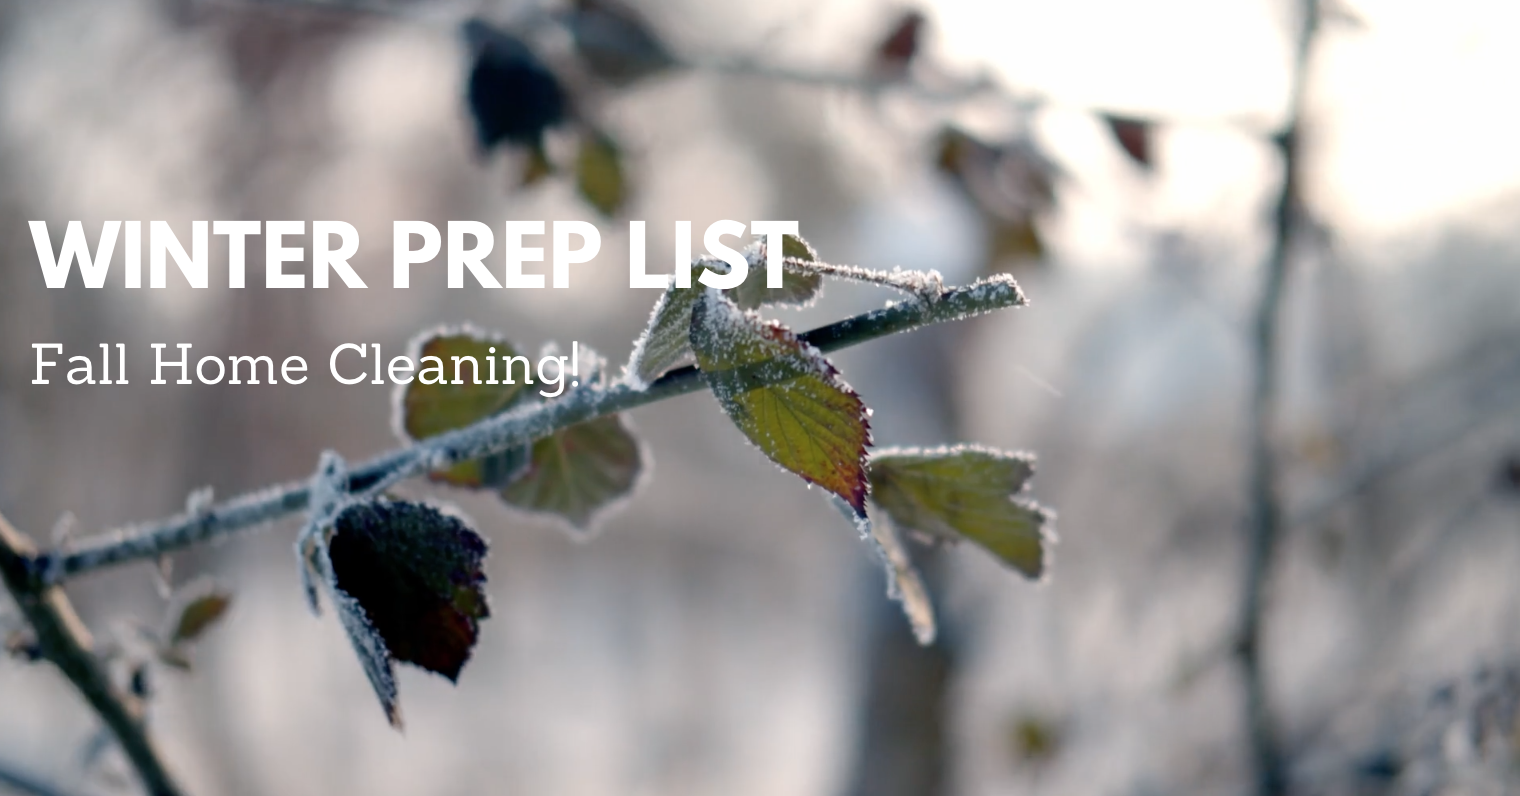 Most Important Ways to Prep Your Home for Winter